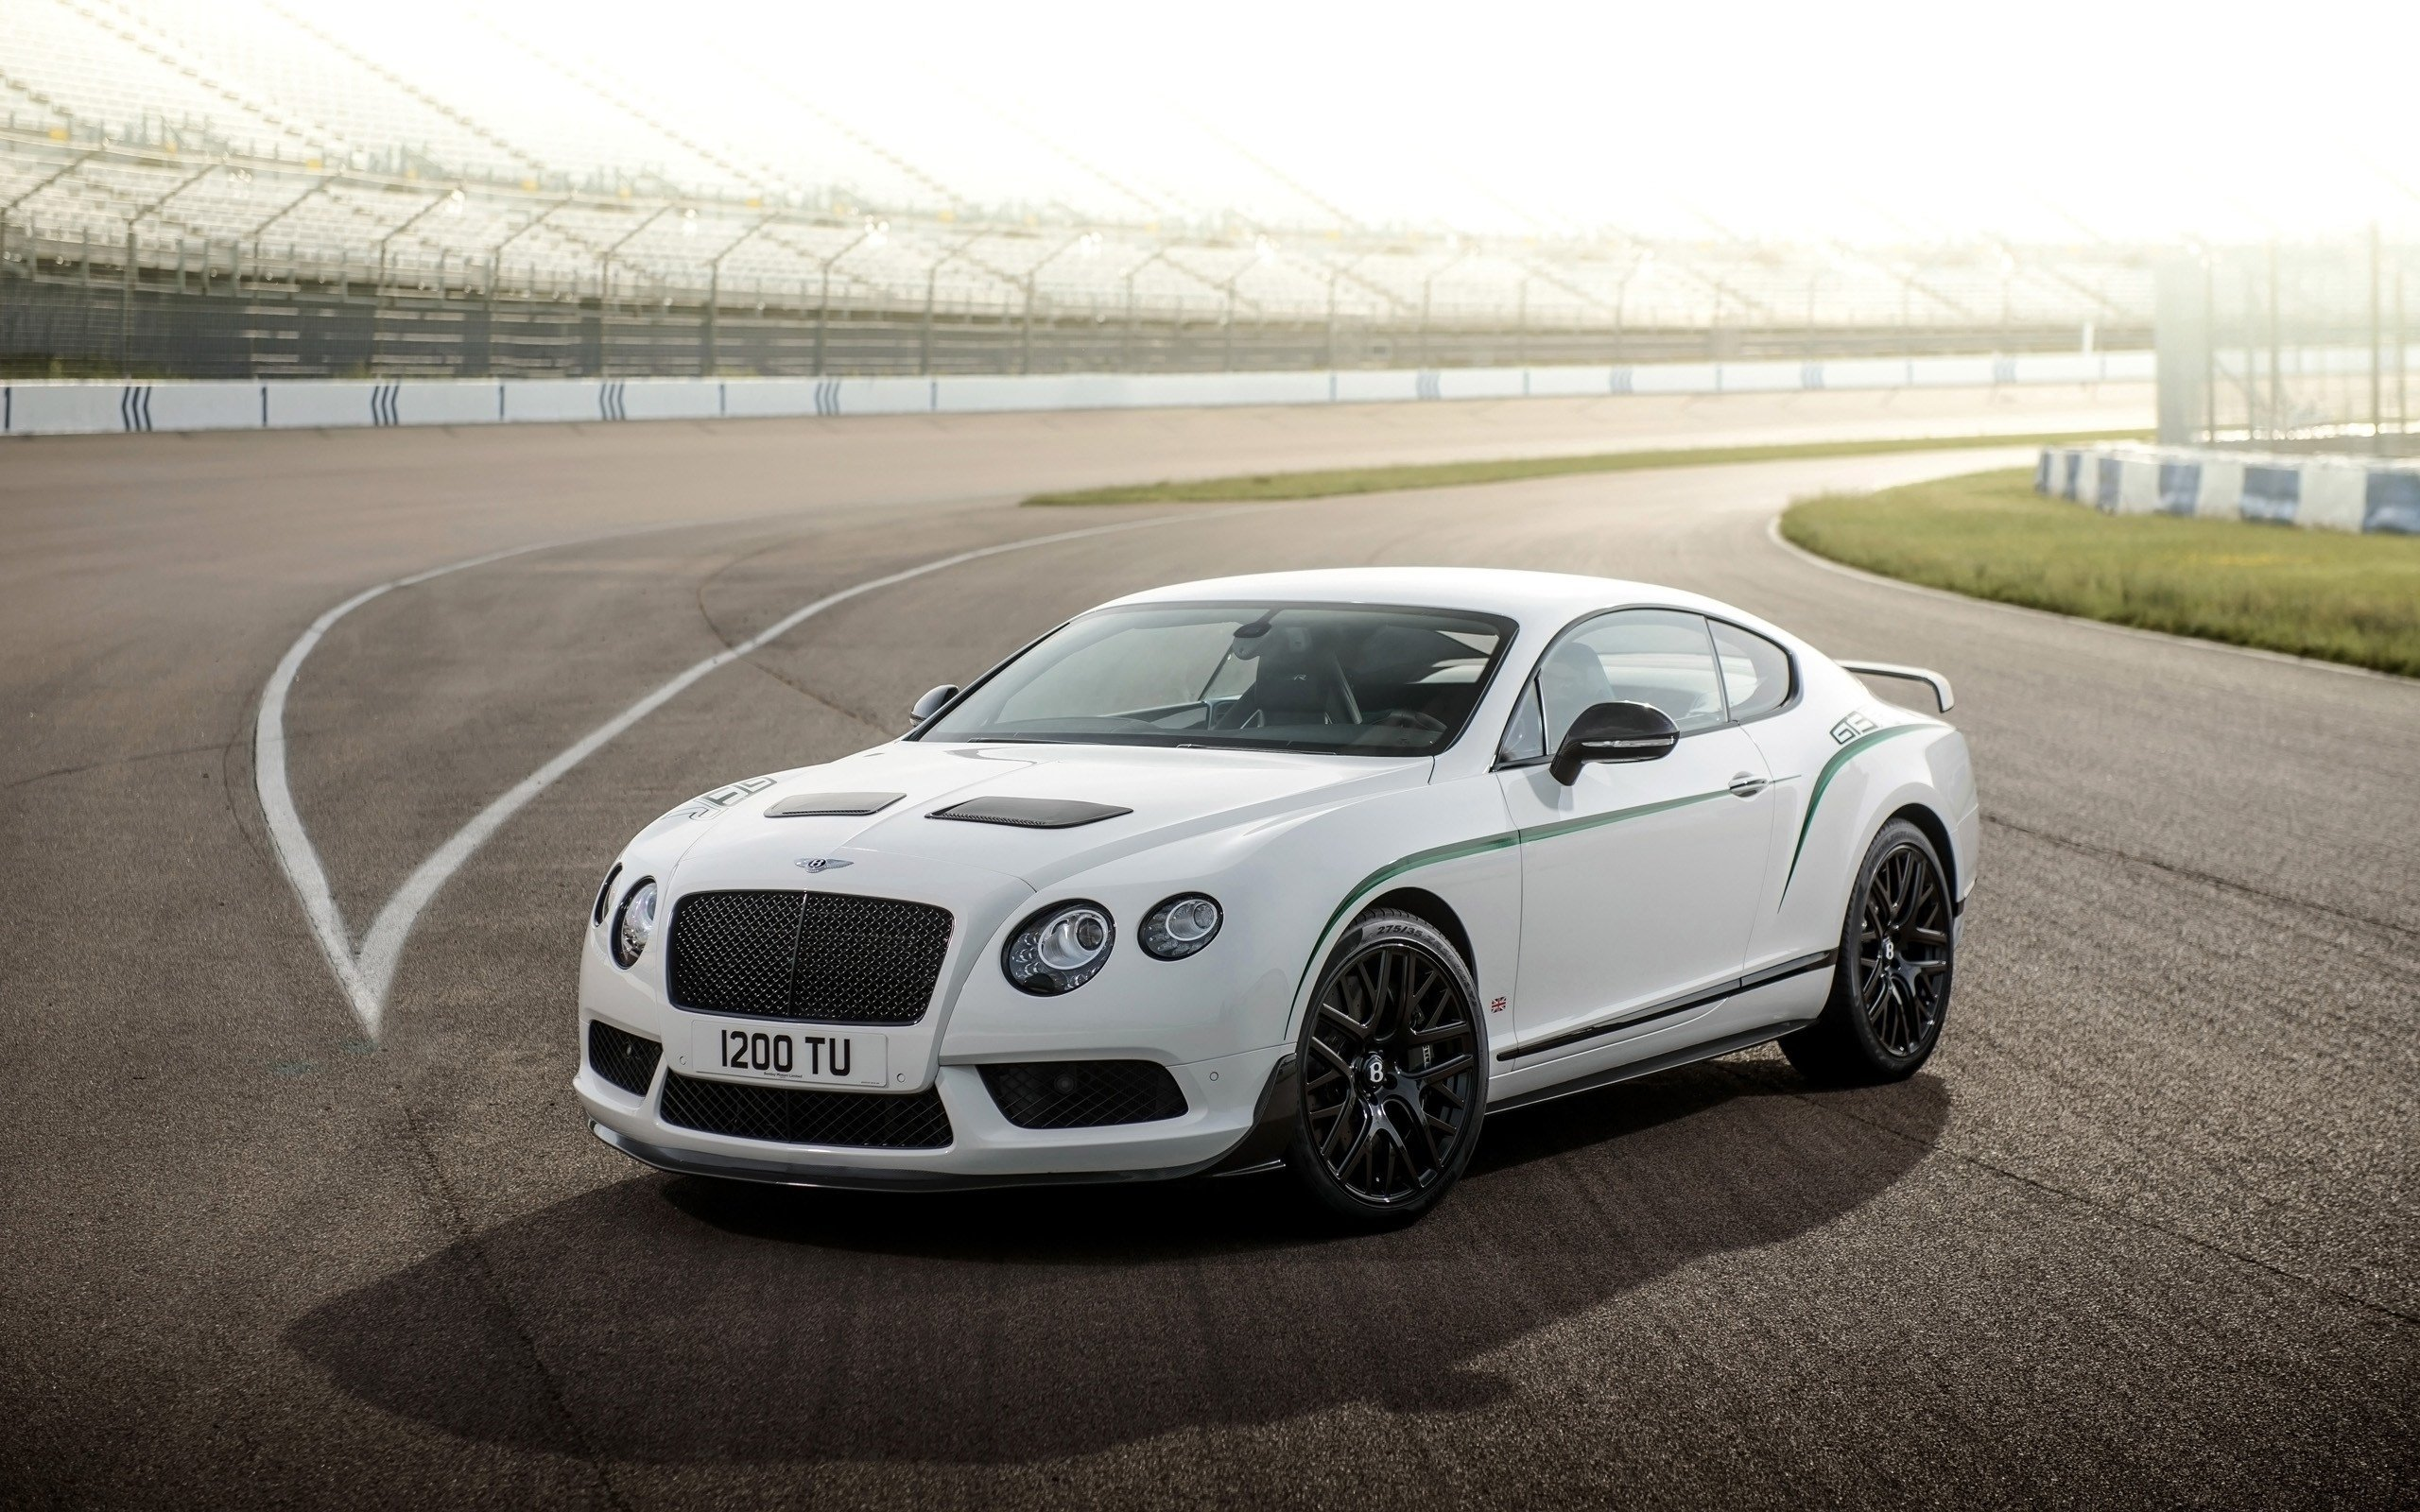 Latest 2015 Bentley Continental Gt3 R Wallpaper Hd Car Free Download